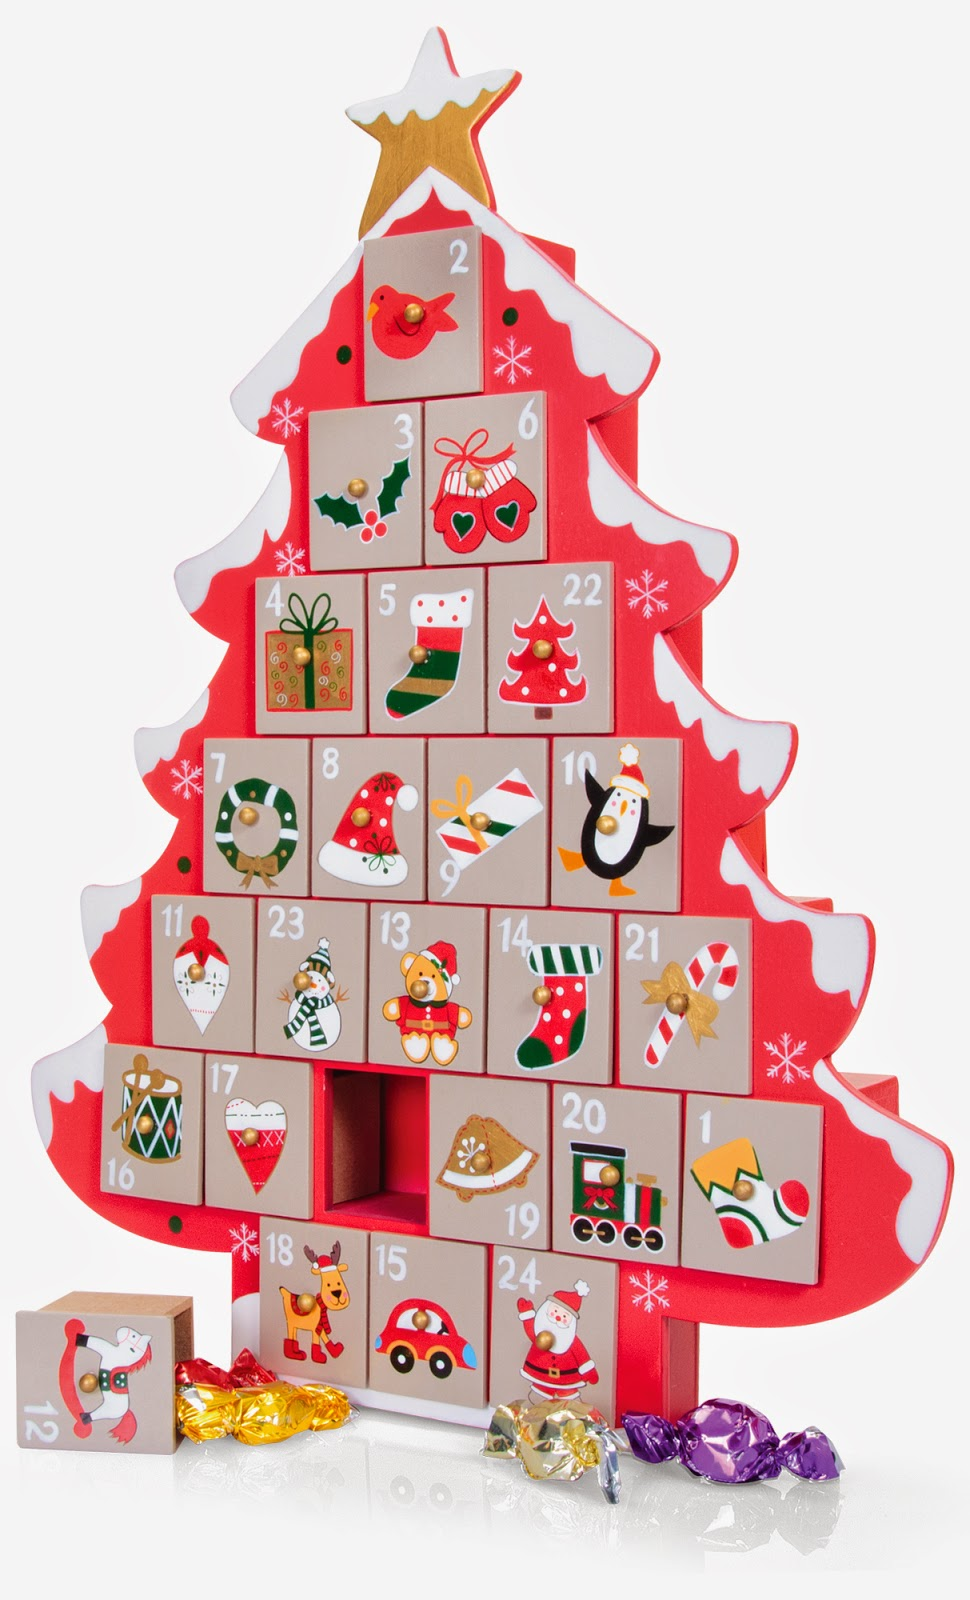 970 x 1600 jpeg 229kB, Wooden Toy Advent Calendars With Drawers ...